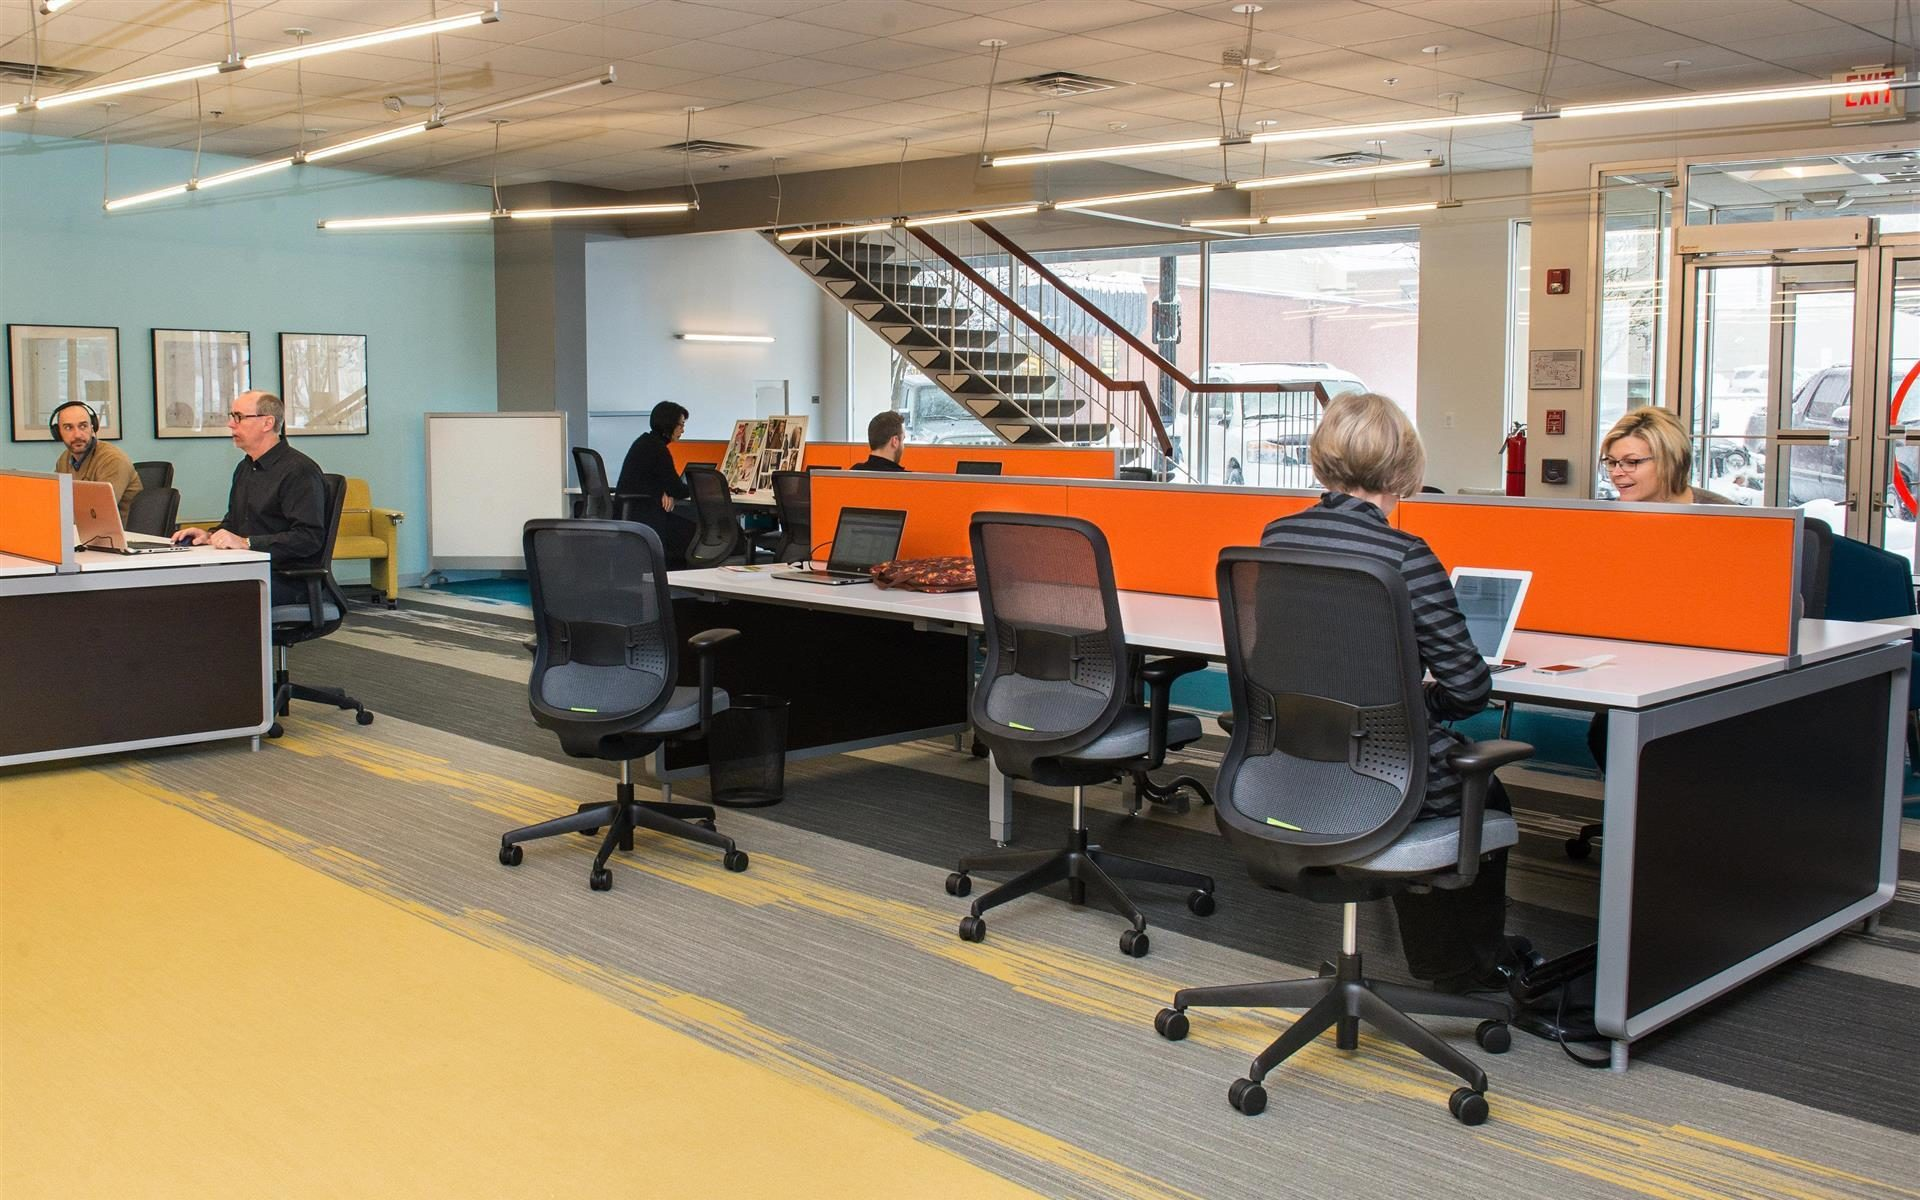 25N Coworking in Chicago, Illinois